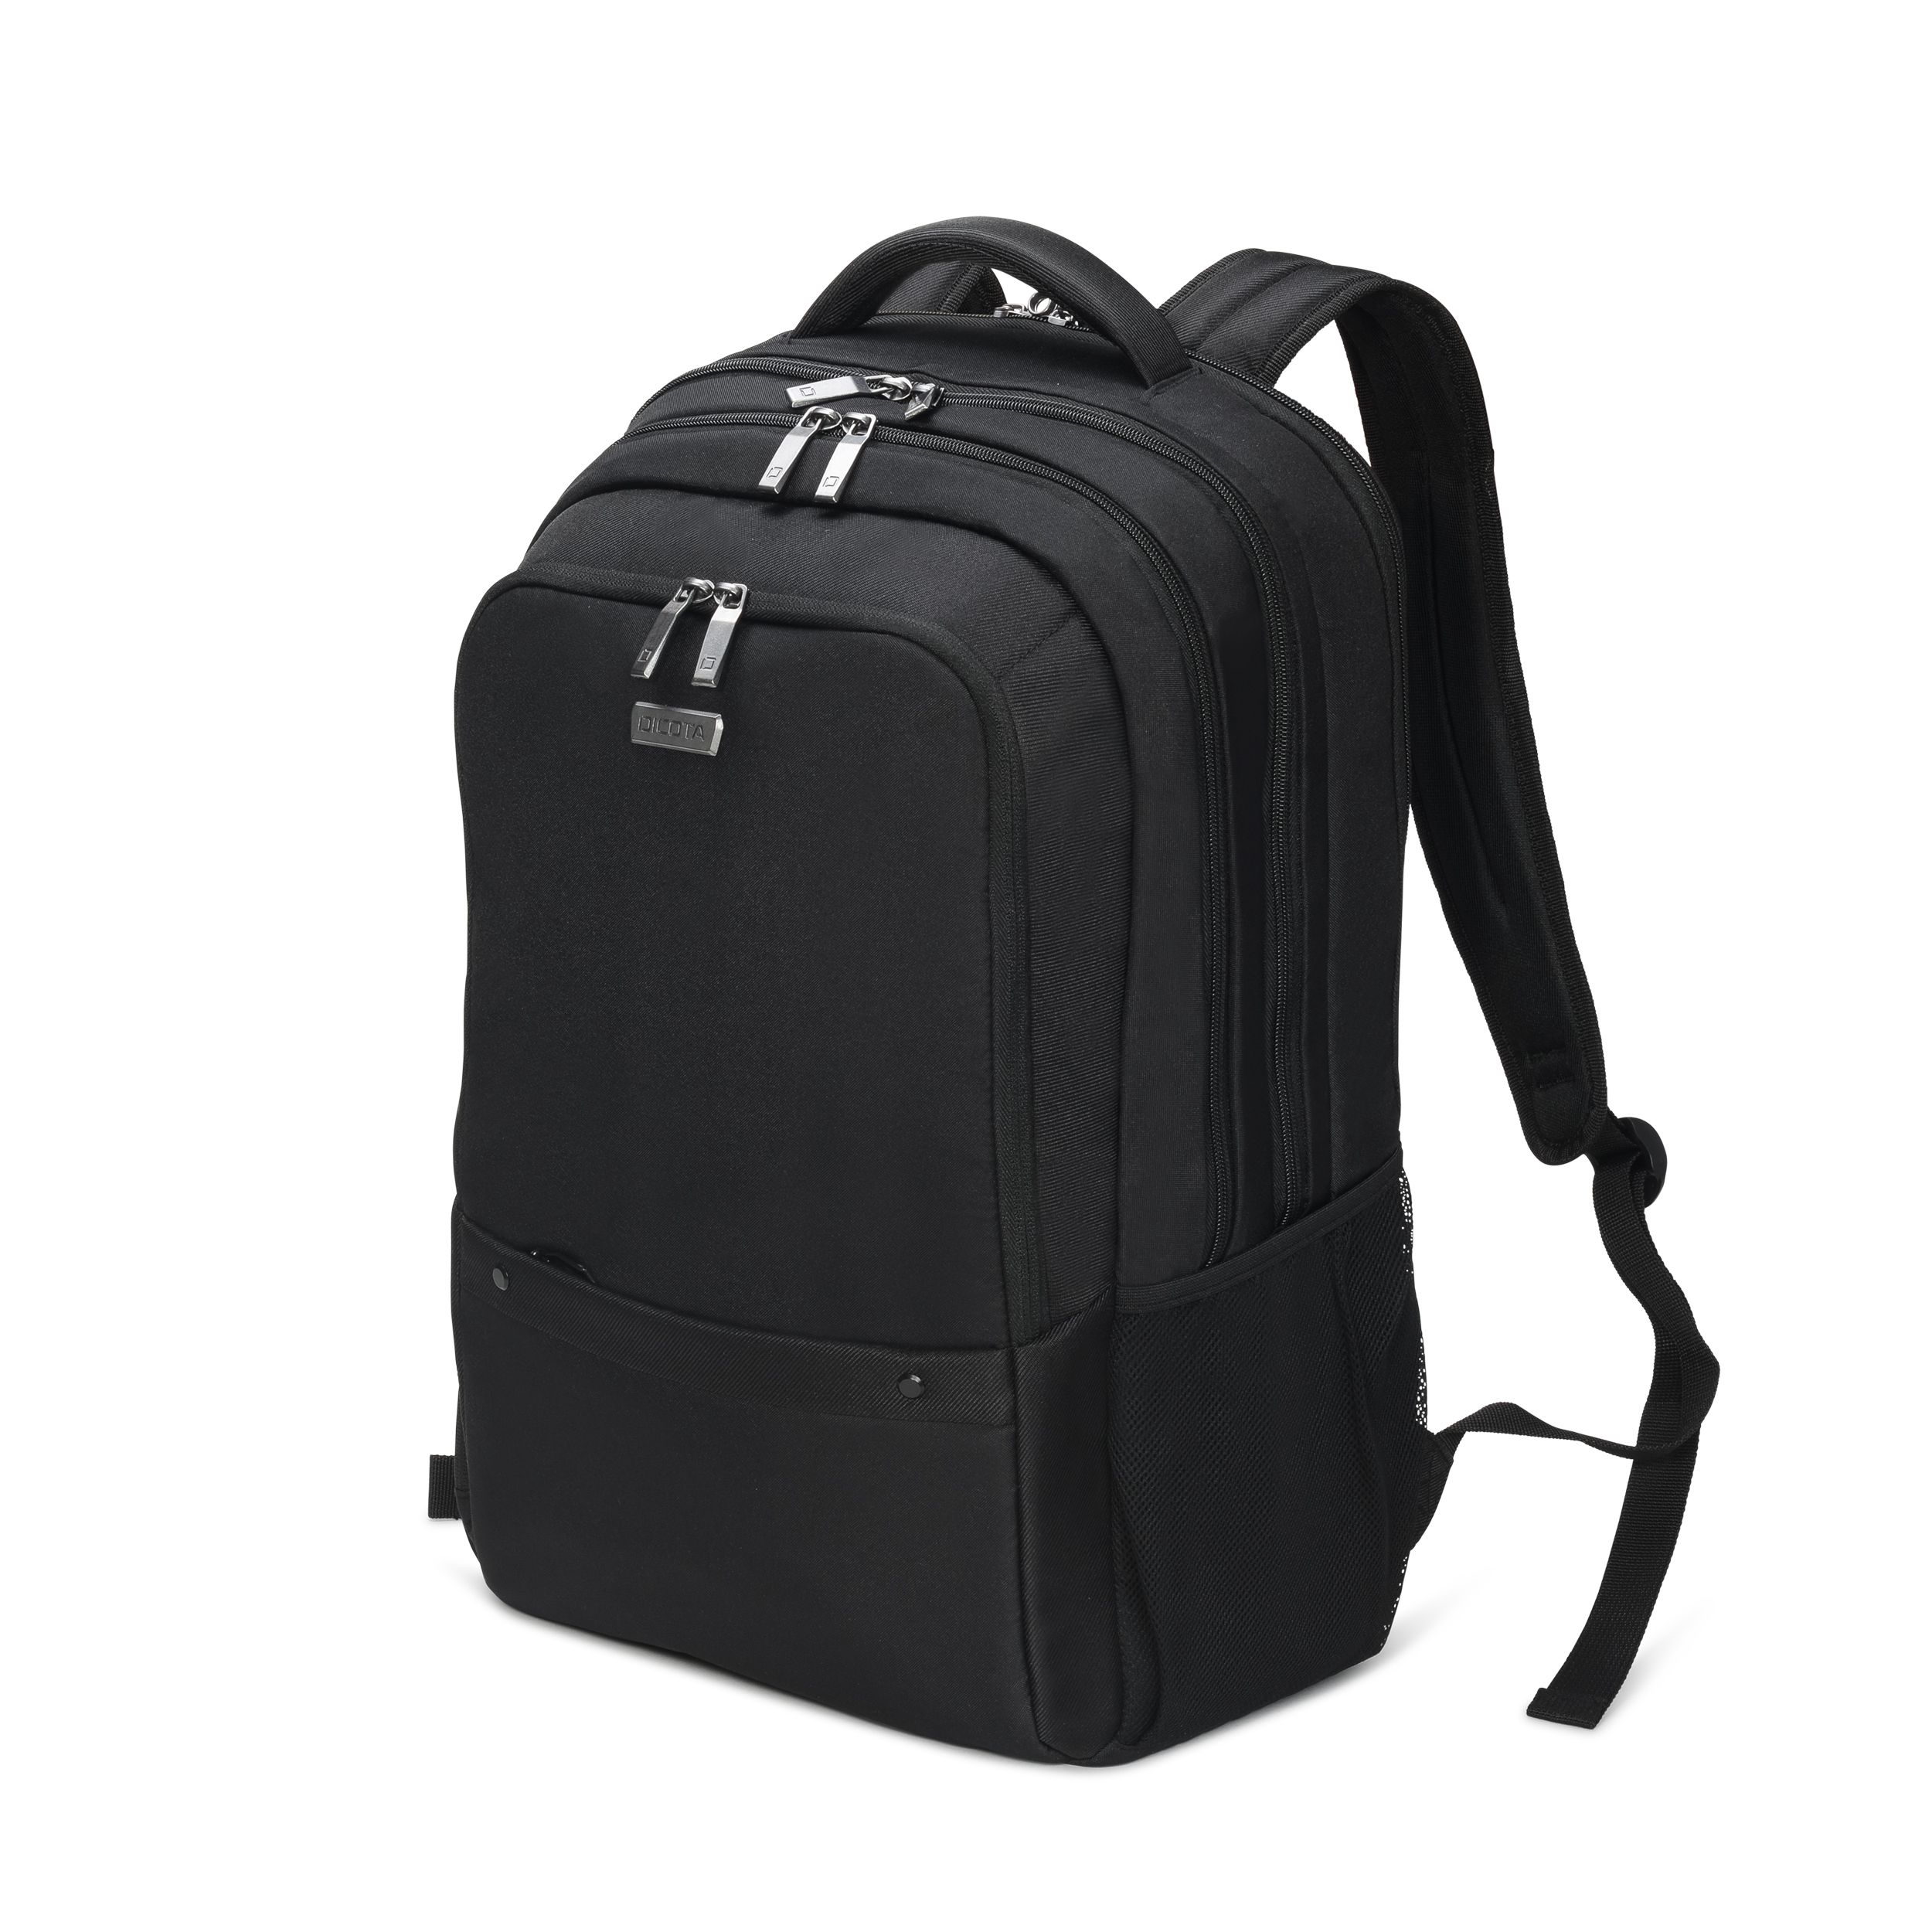 D31637 DICOTA Eco Backpack SELECT 15-17.3